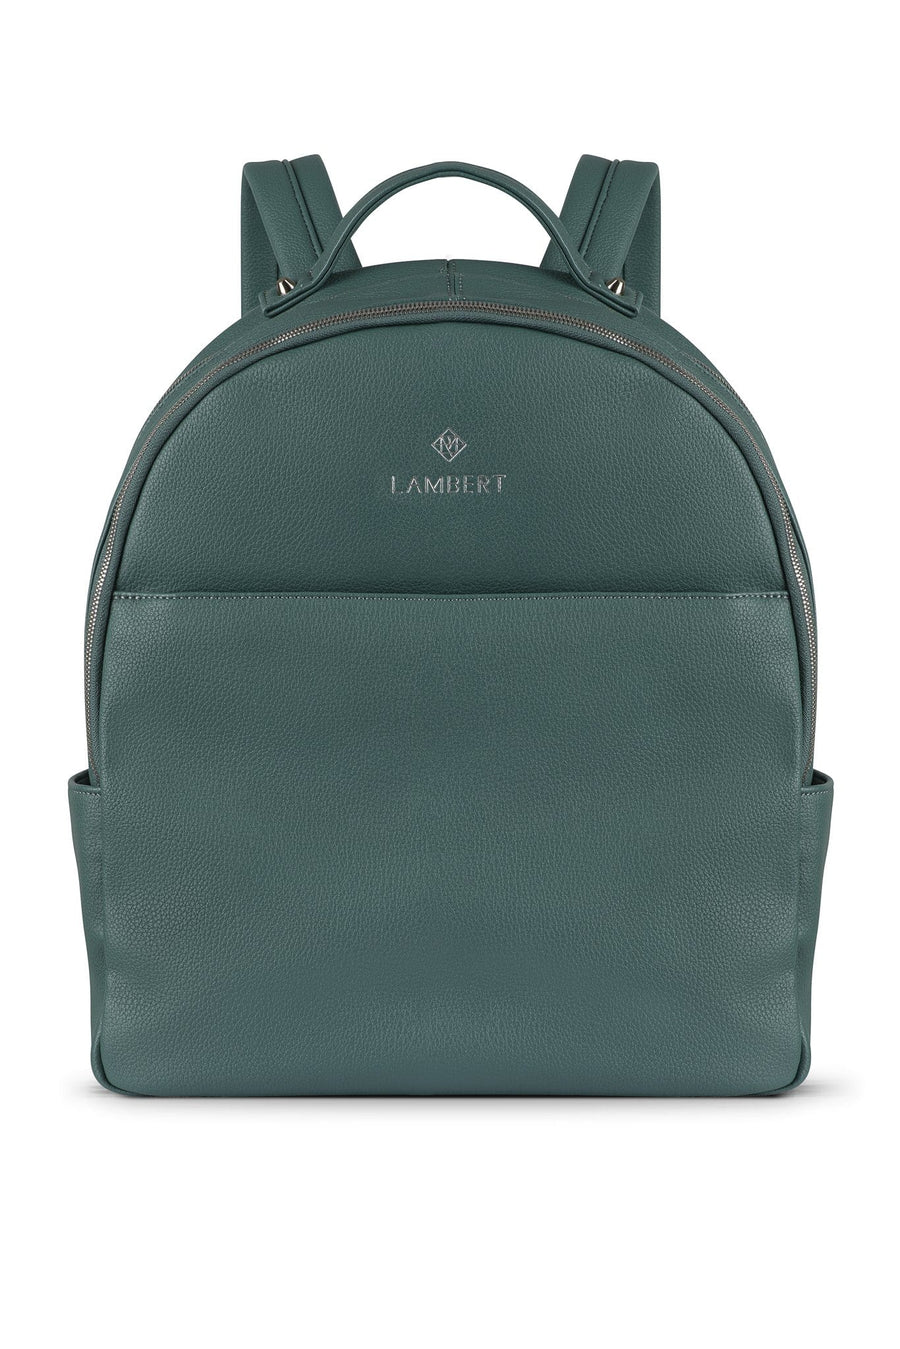 CHARLOTTE - Urban, Fashion Backpacks For Women